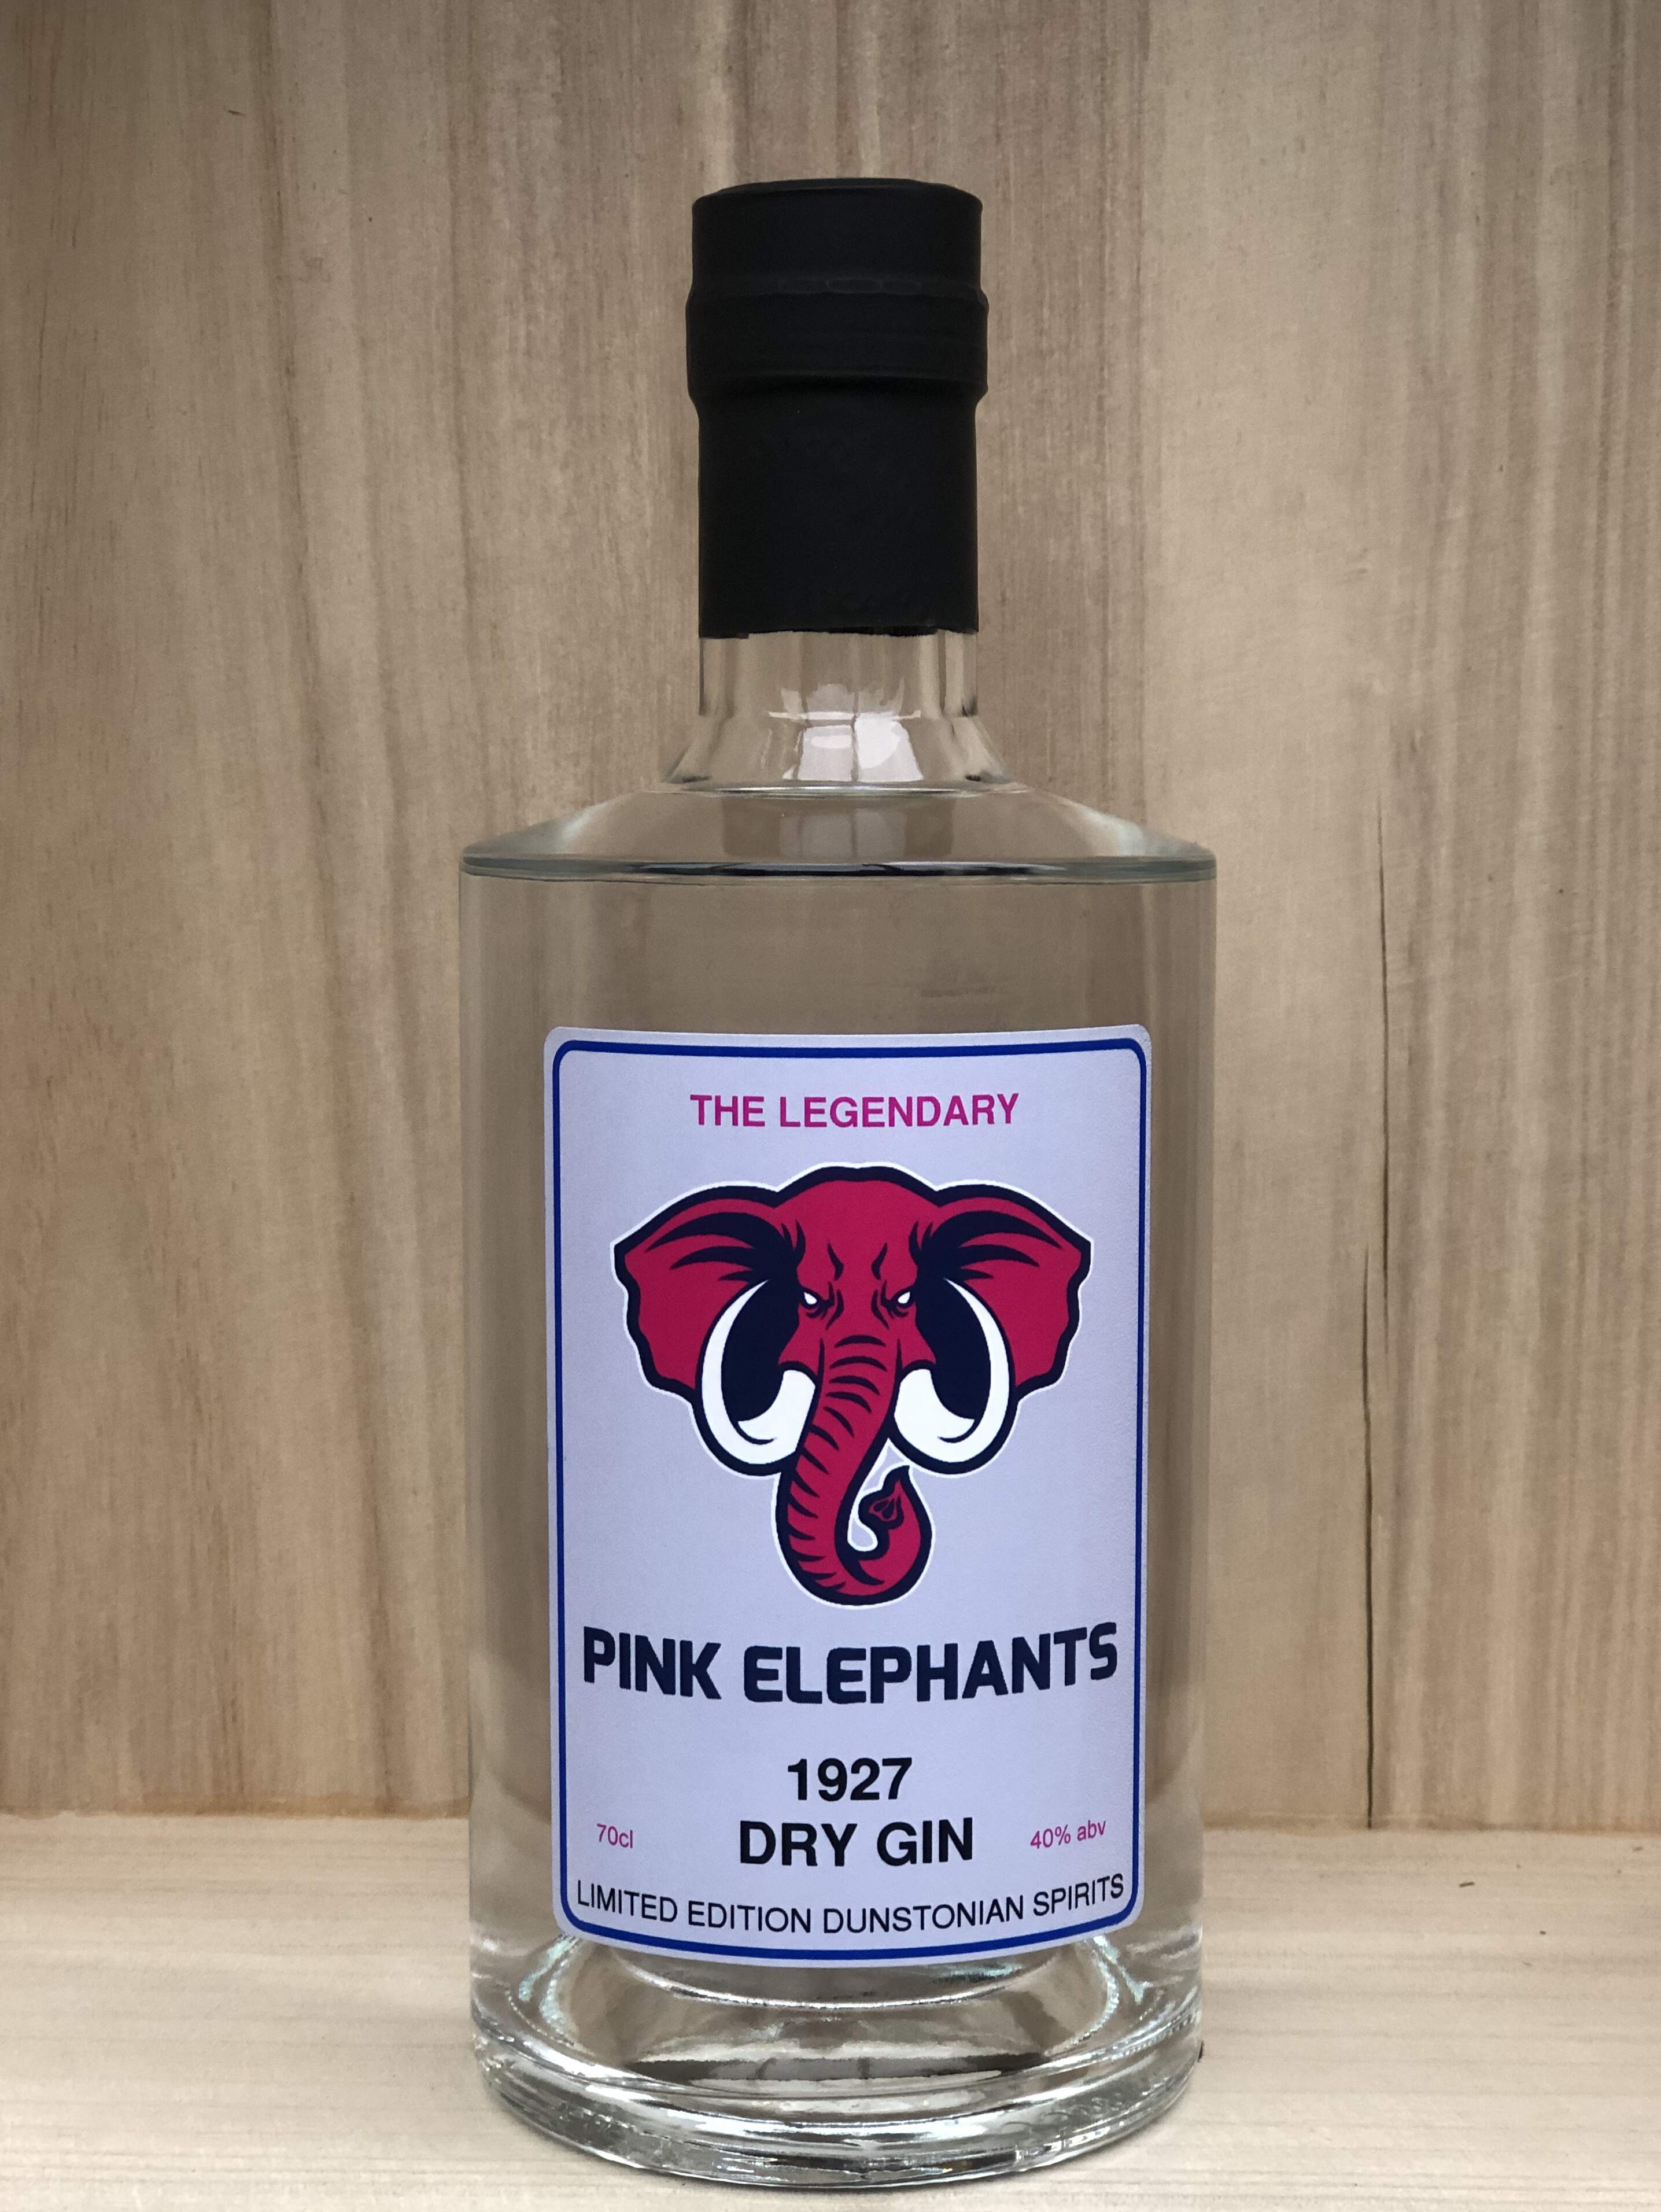 Dunstonian 'Pink Elephants' 1927 Dry Gin